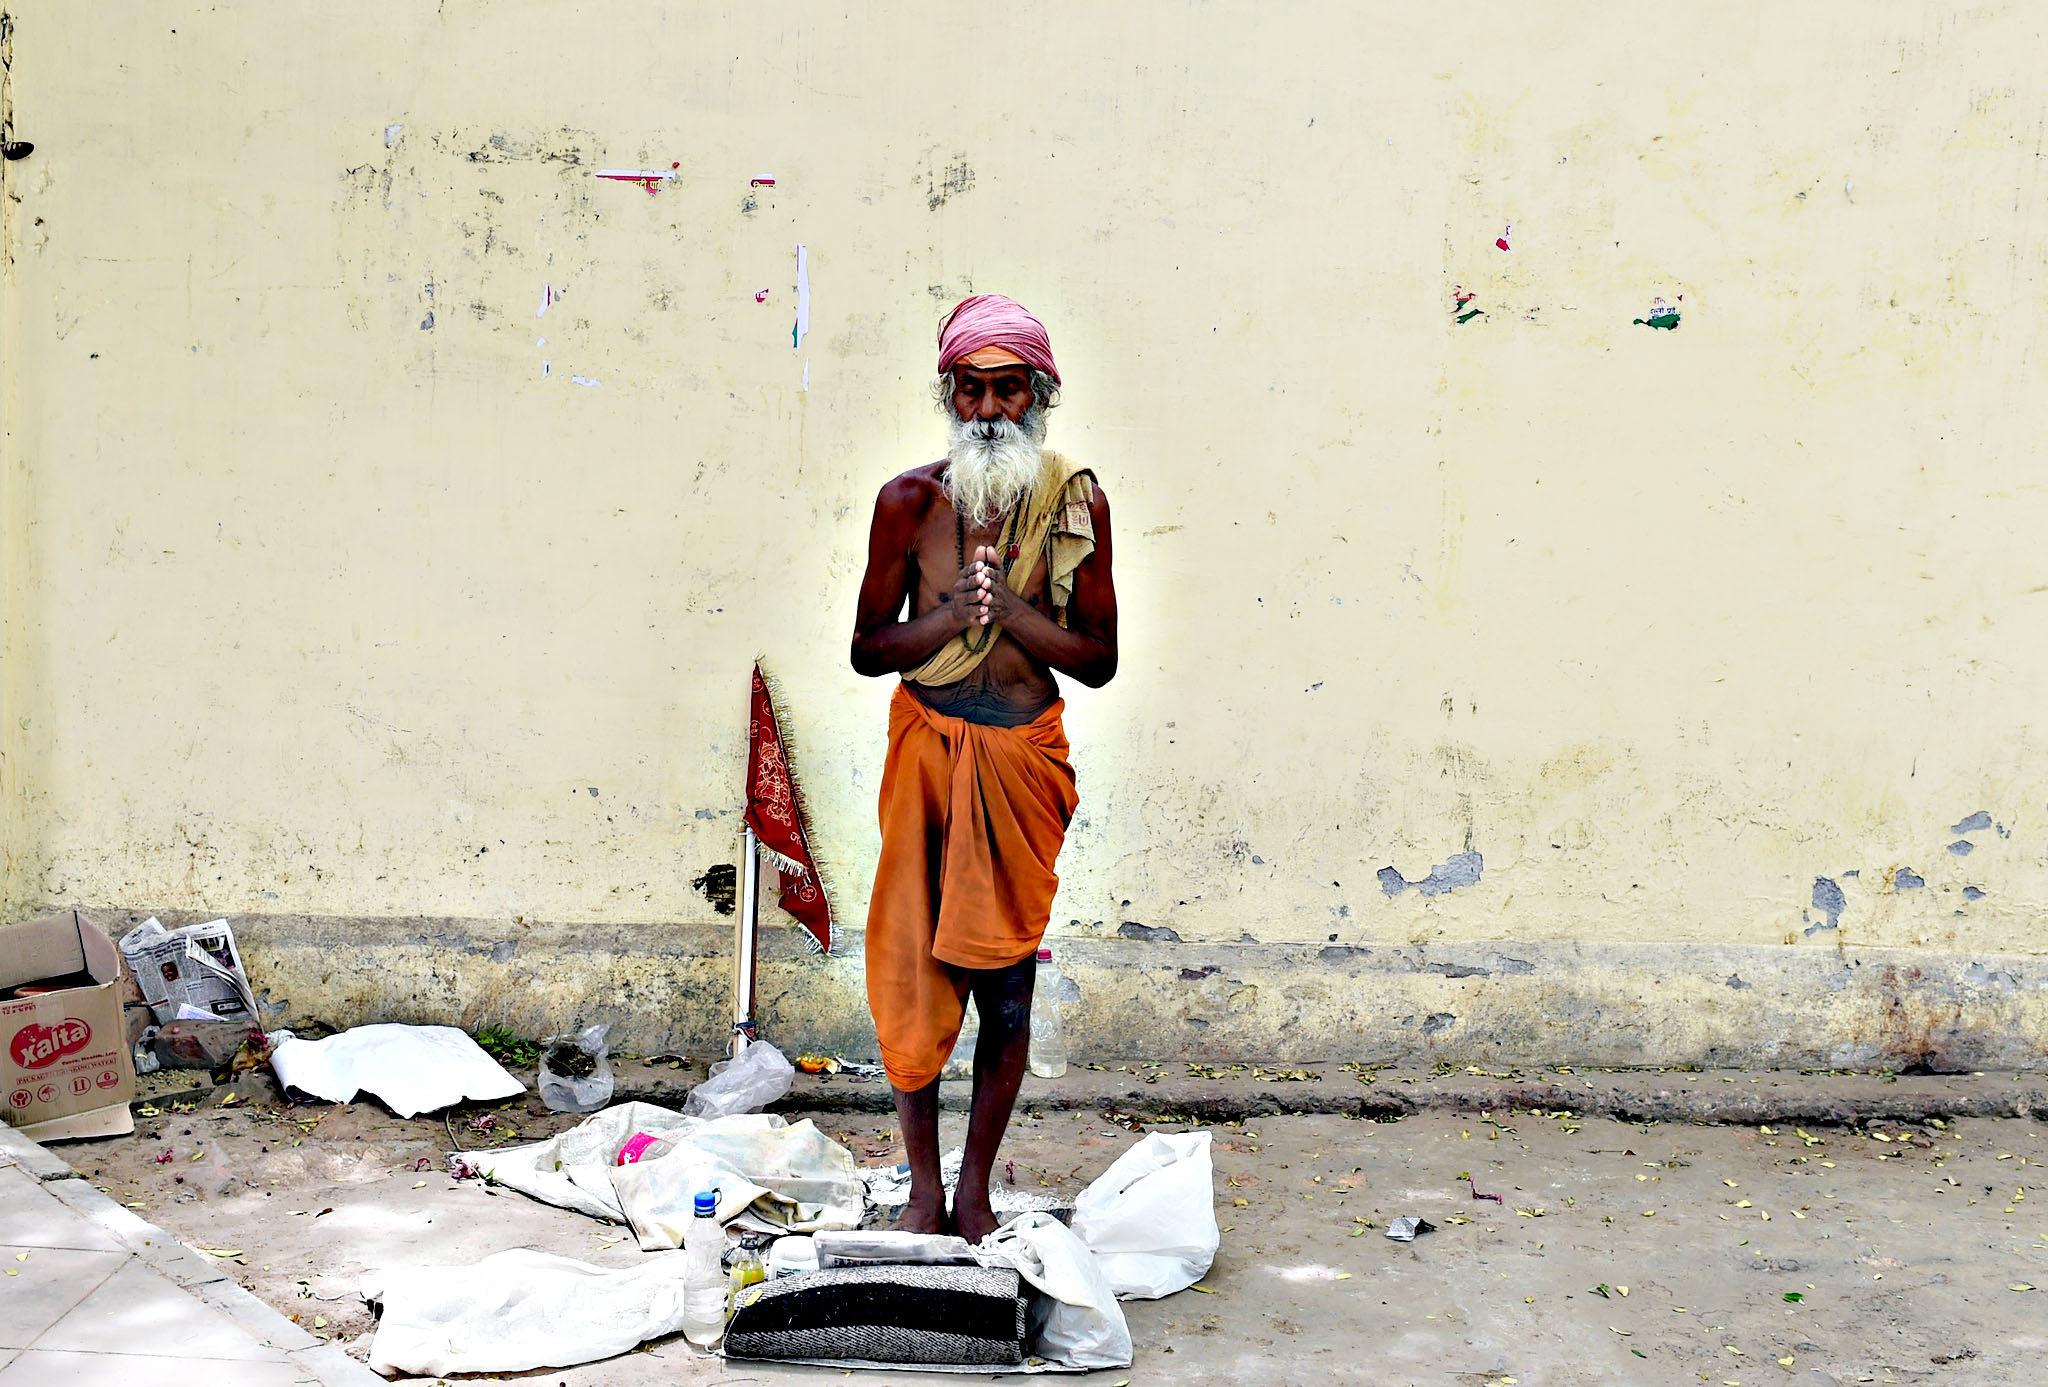 An Indian Sadhu (holy man) prays on the ...An Indian Sadhu (holy man) prays on the roadside in New Delhi on June 1, 2015.